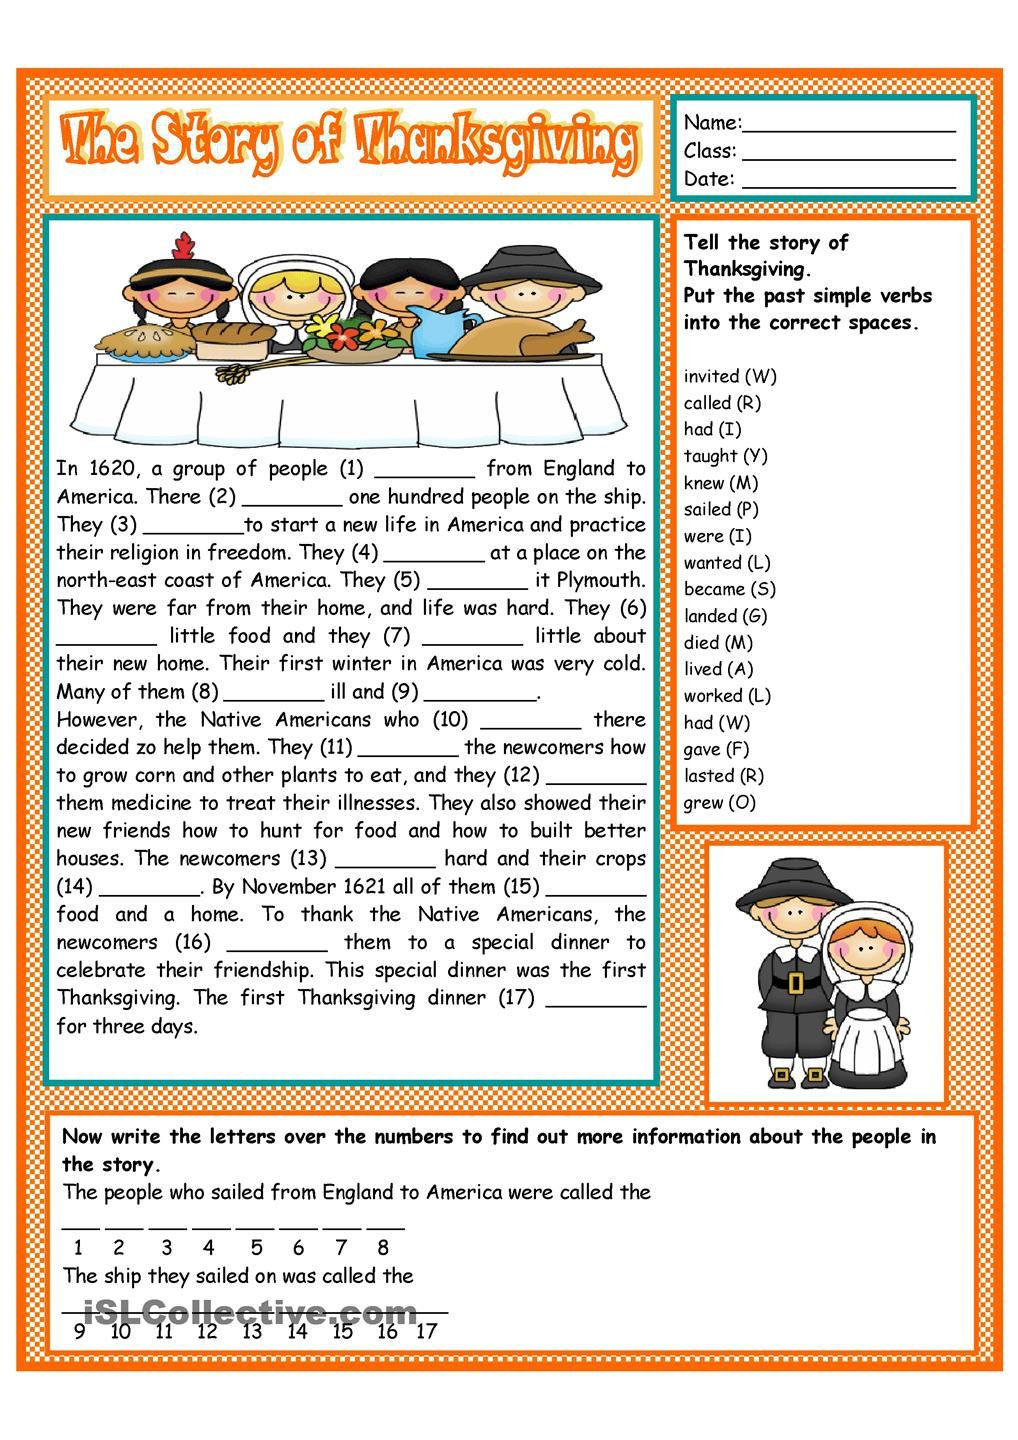 Thanksgiving Worksheets for Middle School the Story Of Thanksgiving